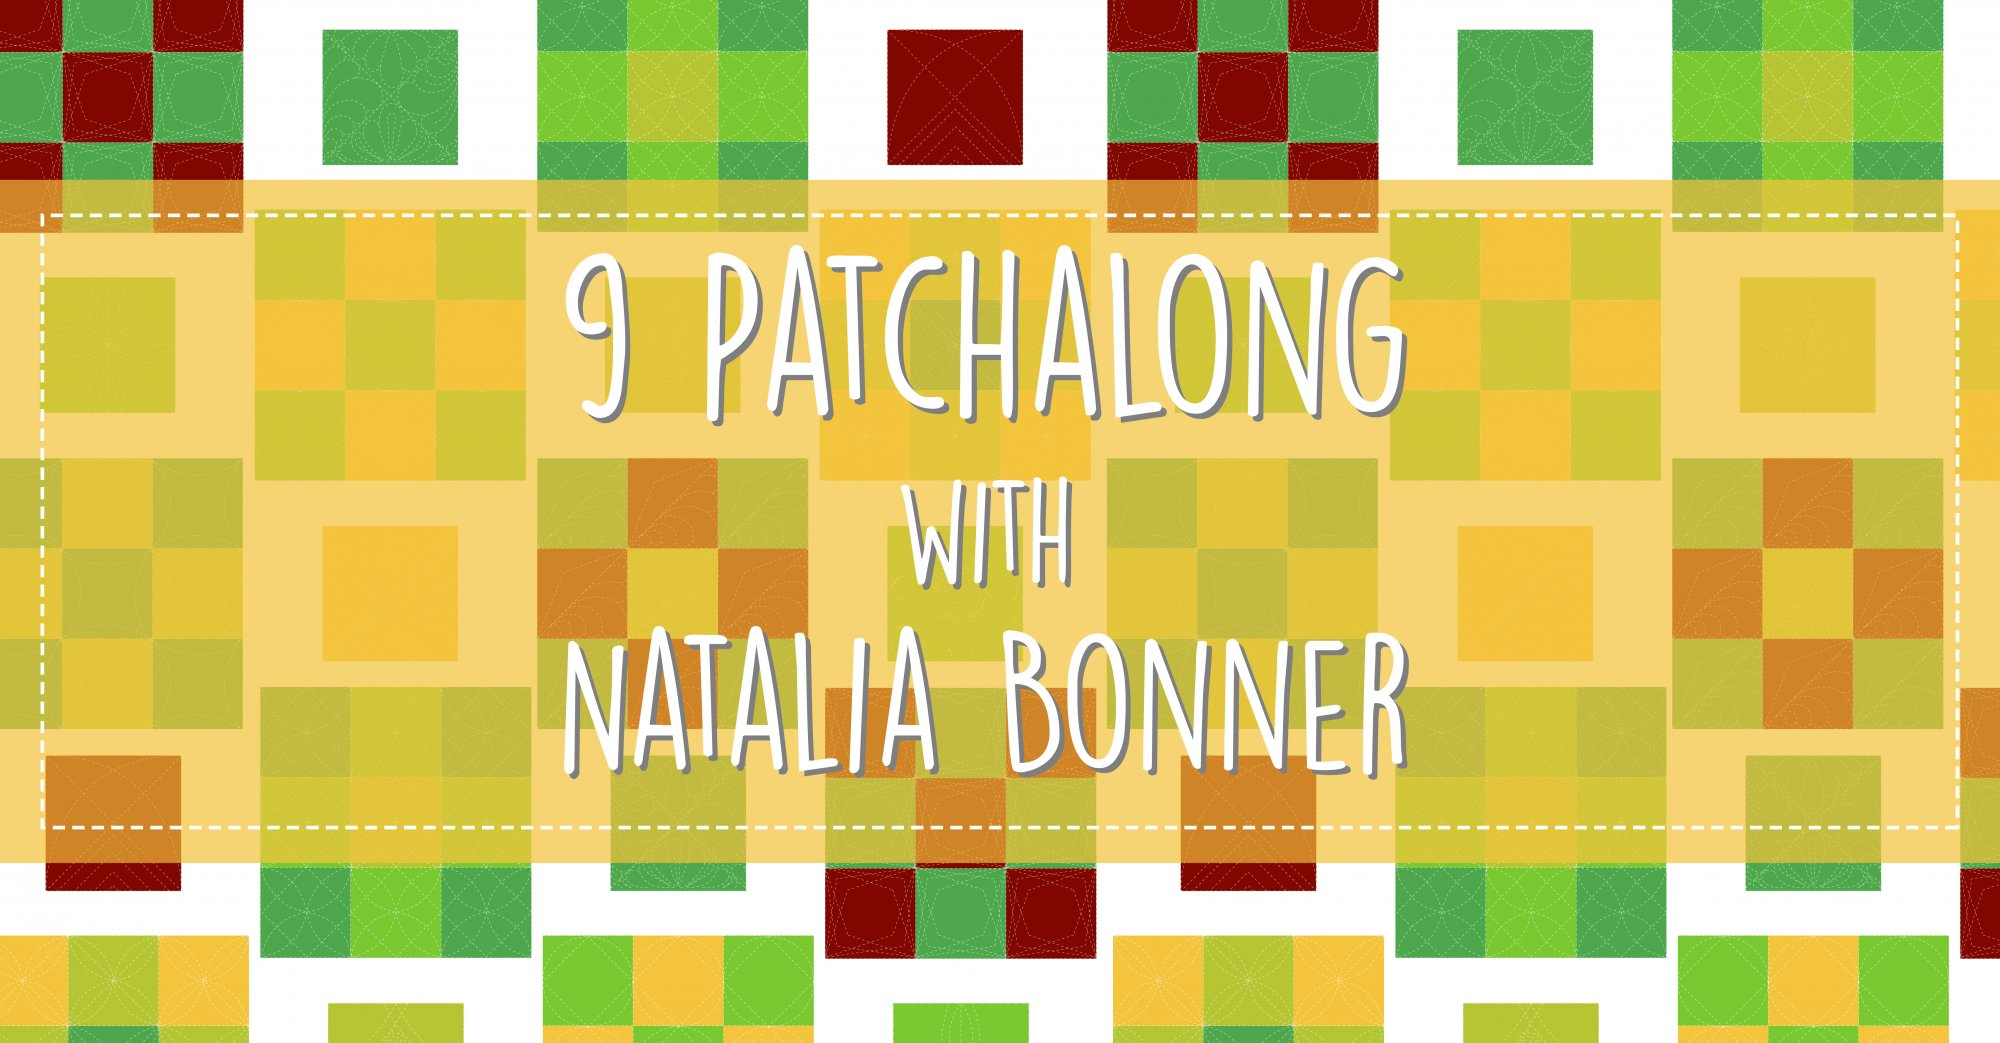 9 Patchalong - An Online Stitch-Along with Natalia Bonner - BUNDLE DOES NOT INCLUDE PIECING WORKBOOK!